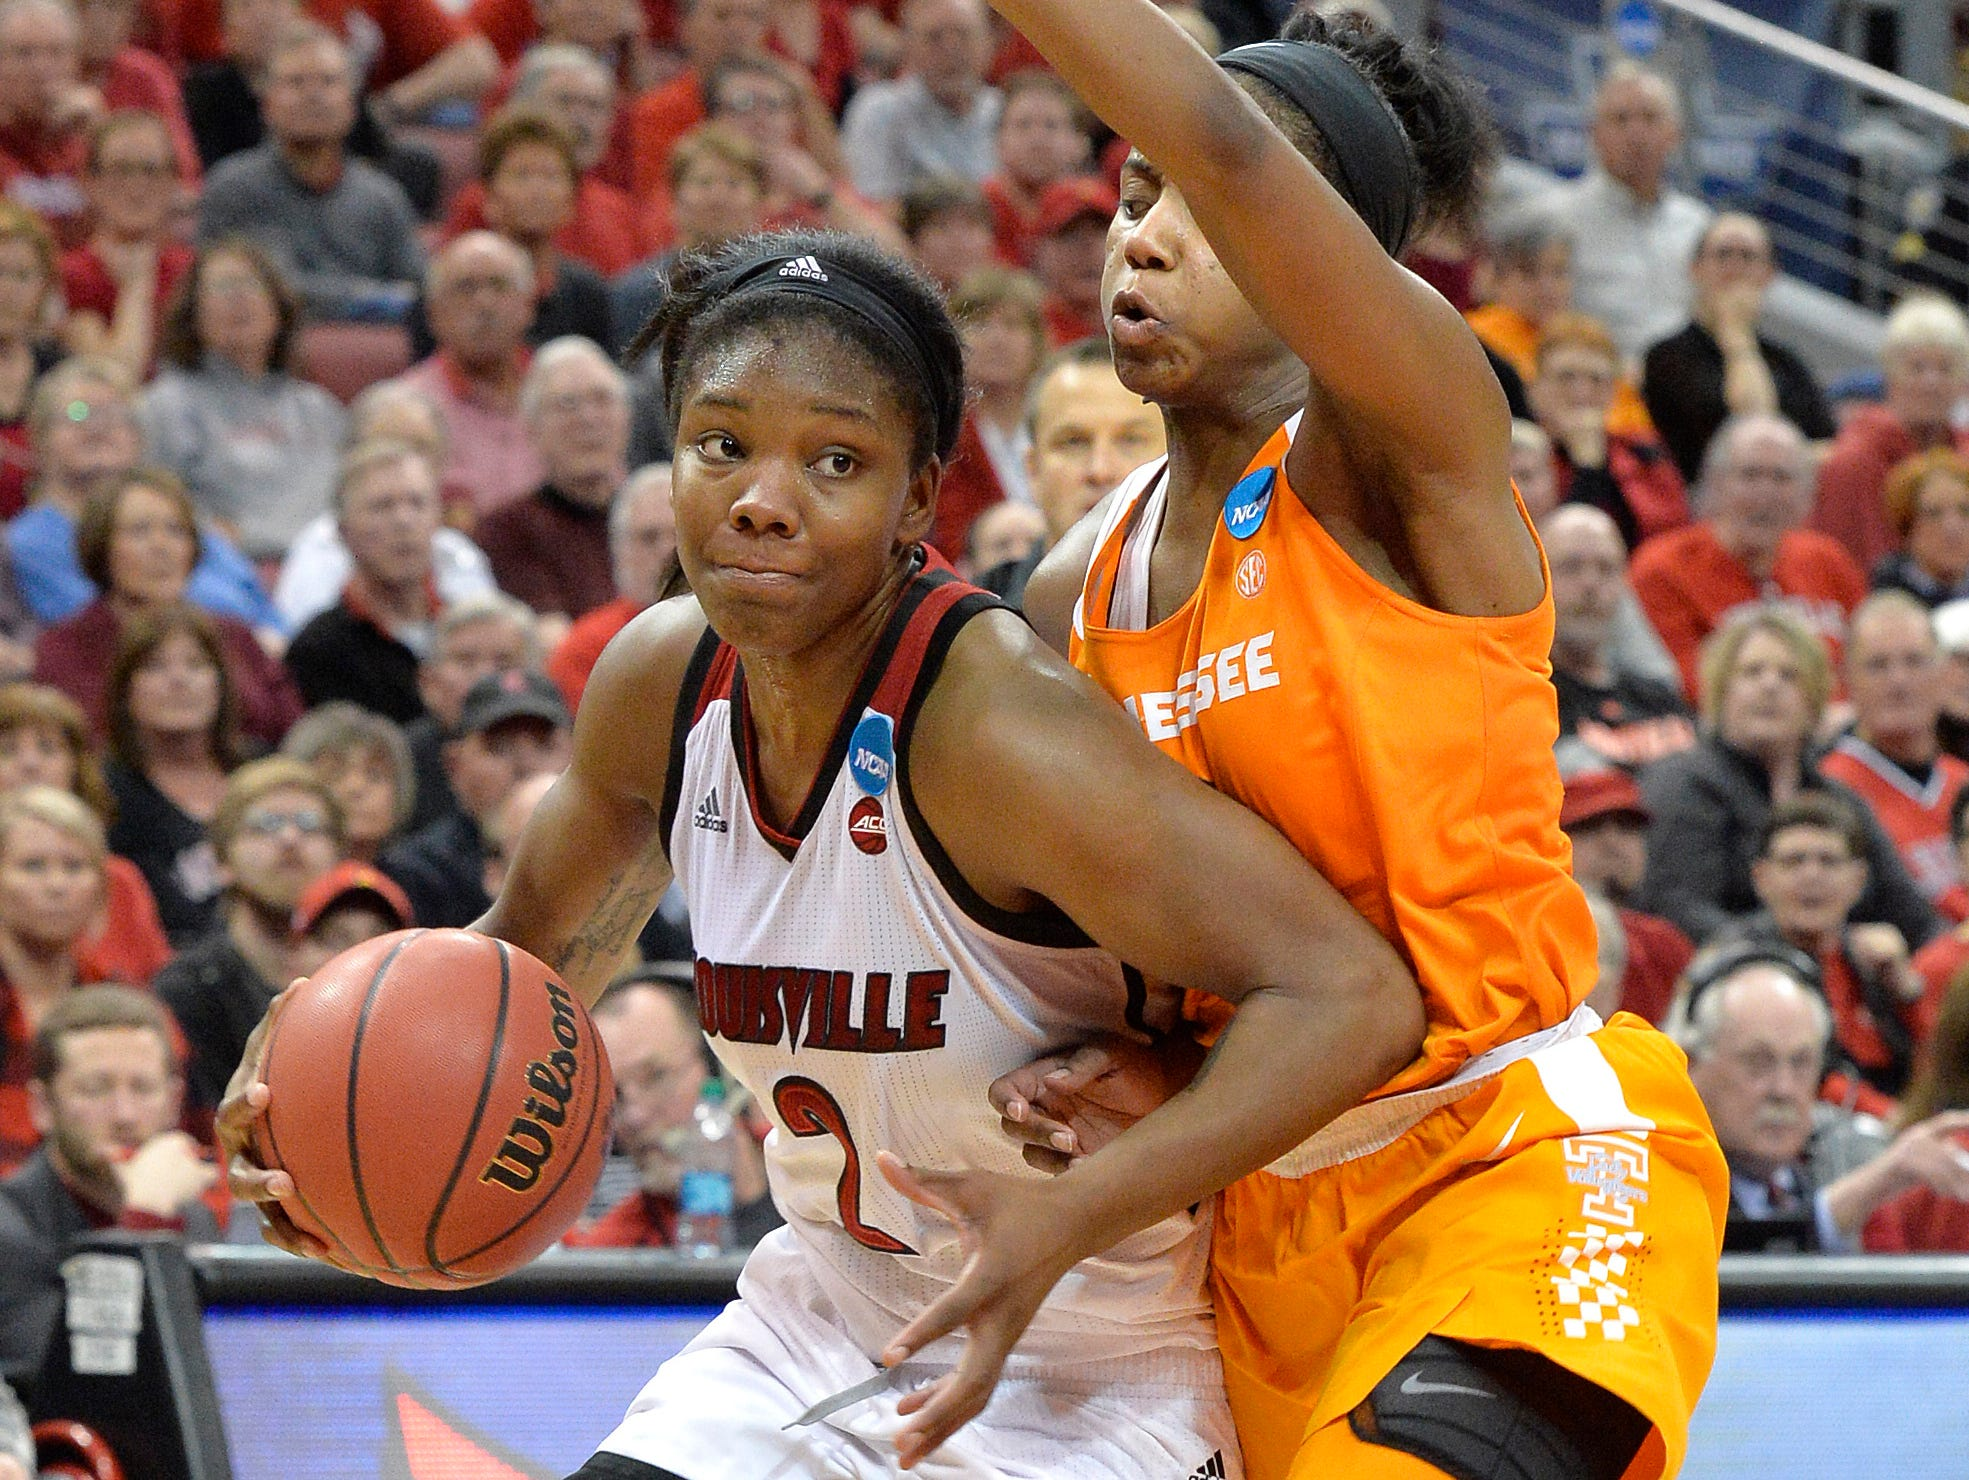 Louisville's Myisha Hines-Allen drives past Tennessee's Jordan Reynolds during the second half of Monday's second-round game in the NCAA women's college basketball tournament in Louisville, Ky. Louisville won 75-64.